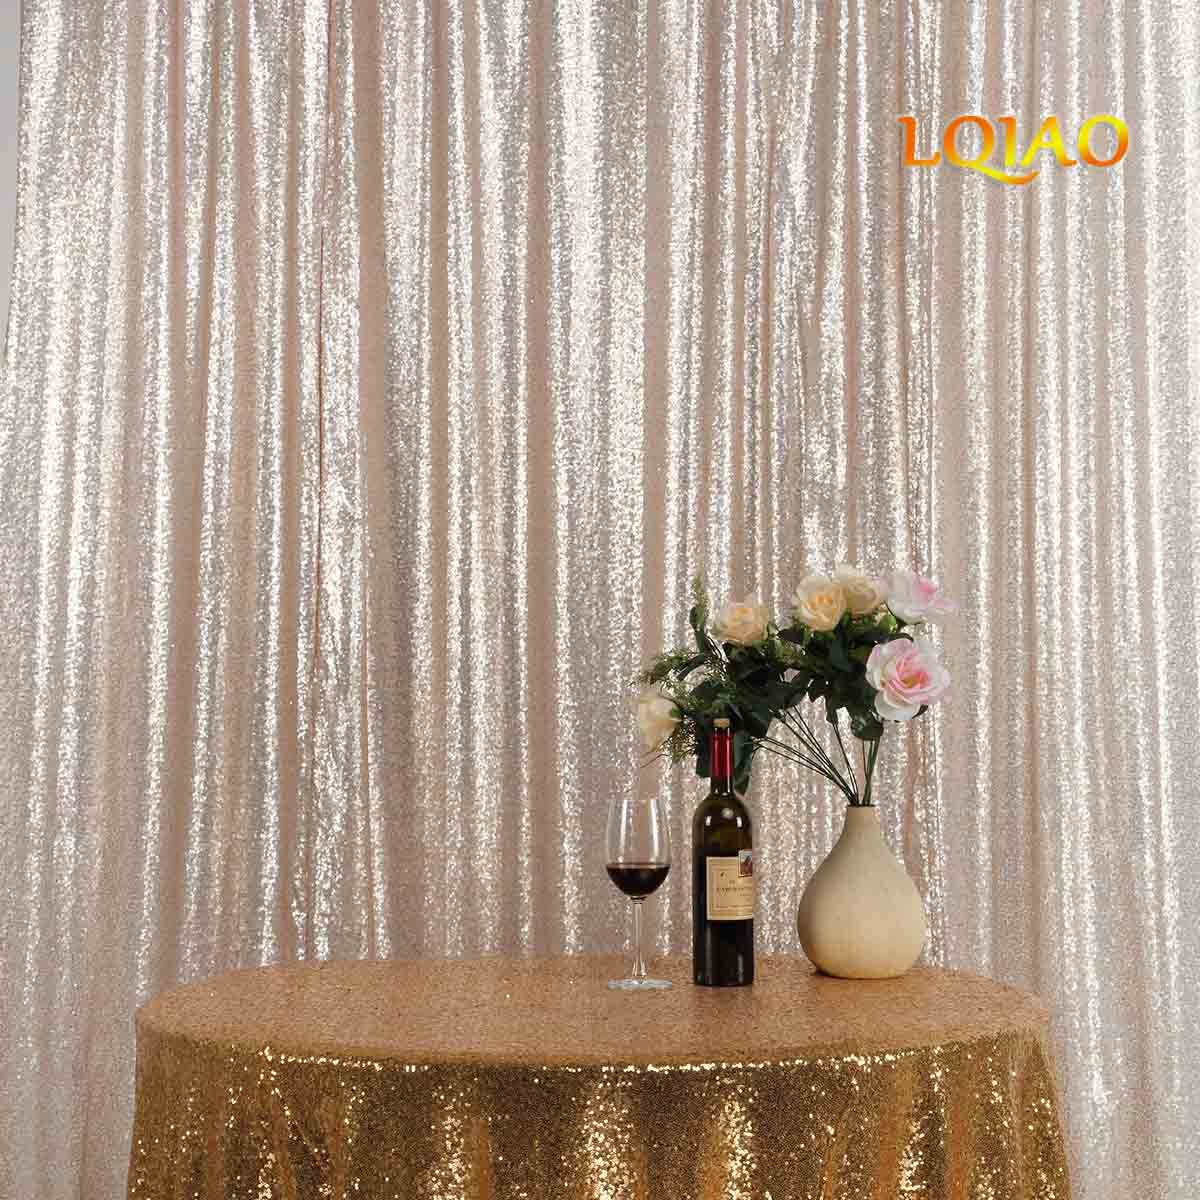 LQIAO Embroidered Sequin Fabric Backdrop Curtain 8FTx8FT Champagne Modern Window Drapes Sequin Curtain for living room/photo booth backdrop